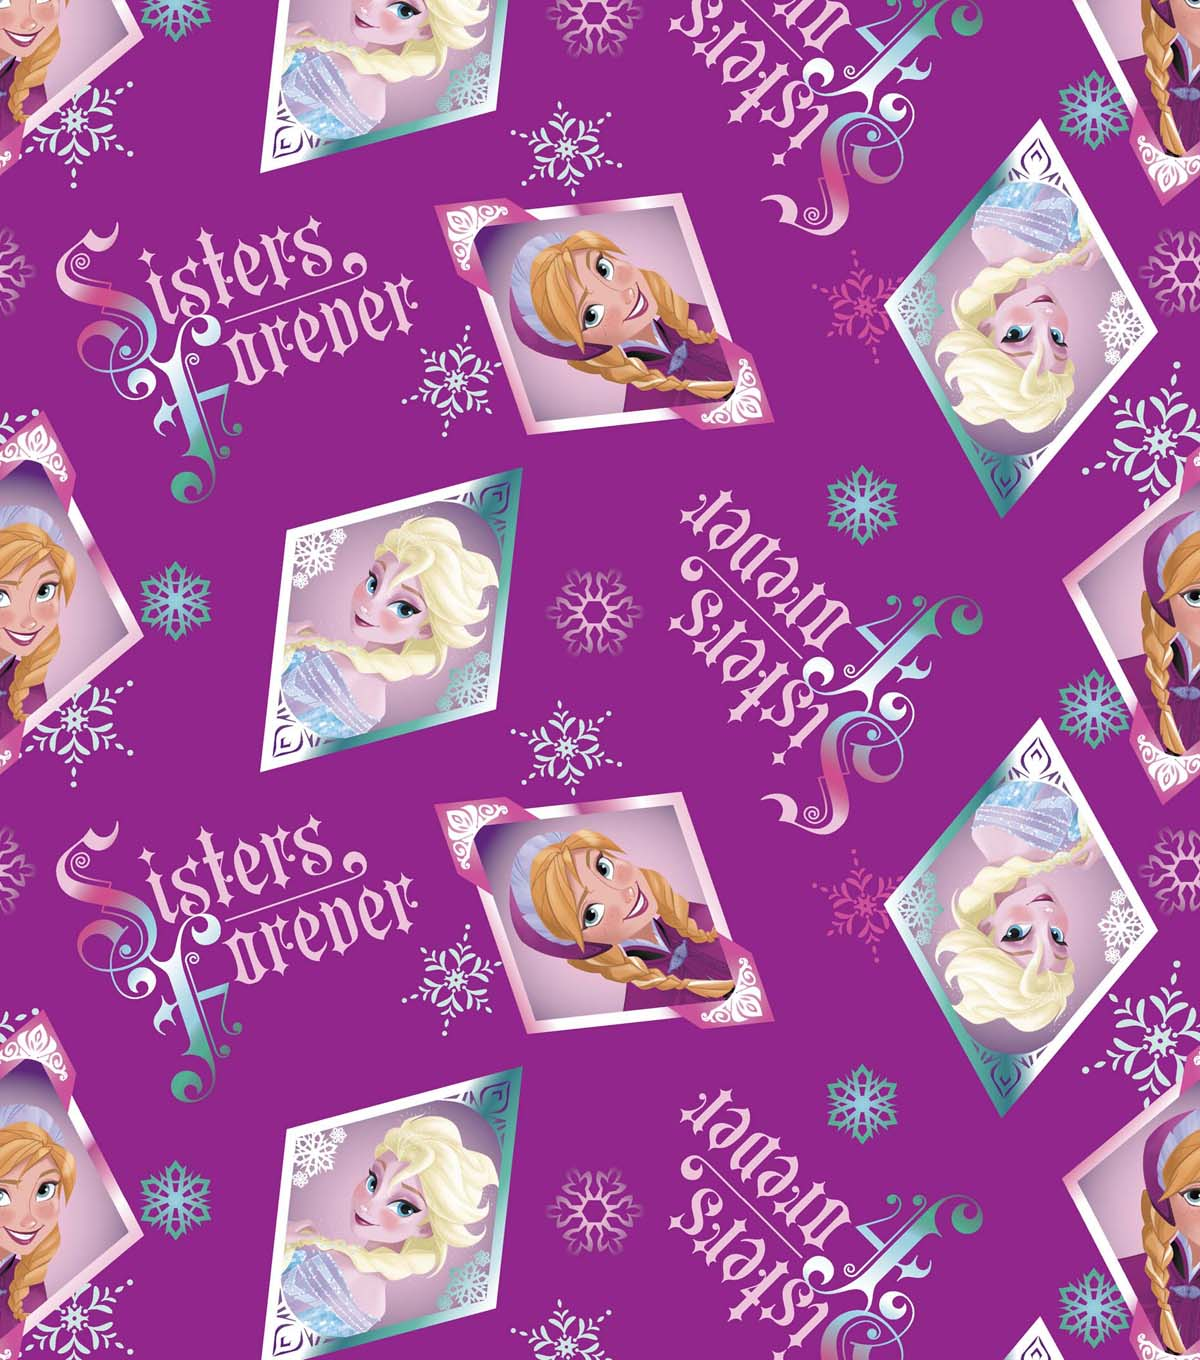 Disney Frozen Sisters Forever Badge Cotton Fabric